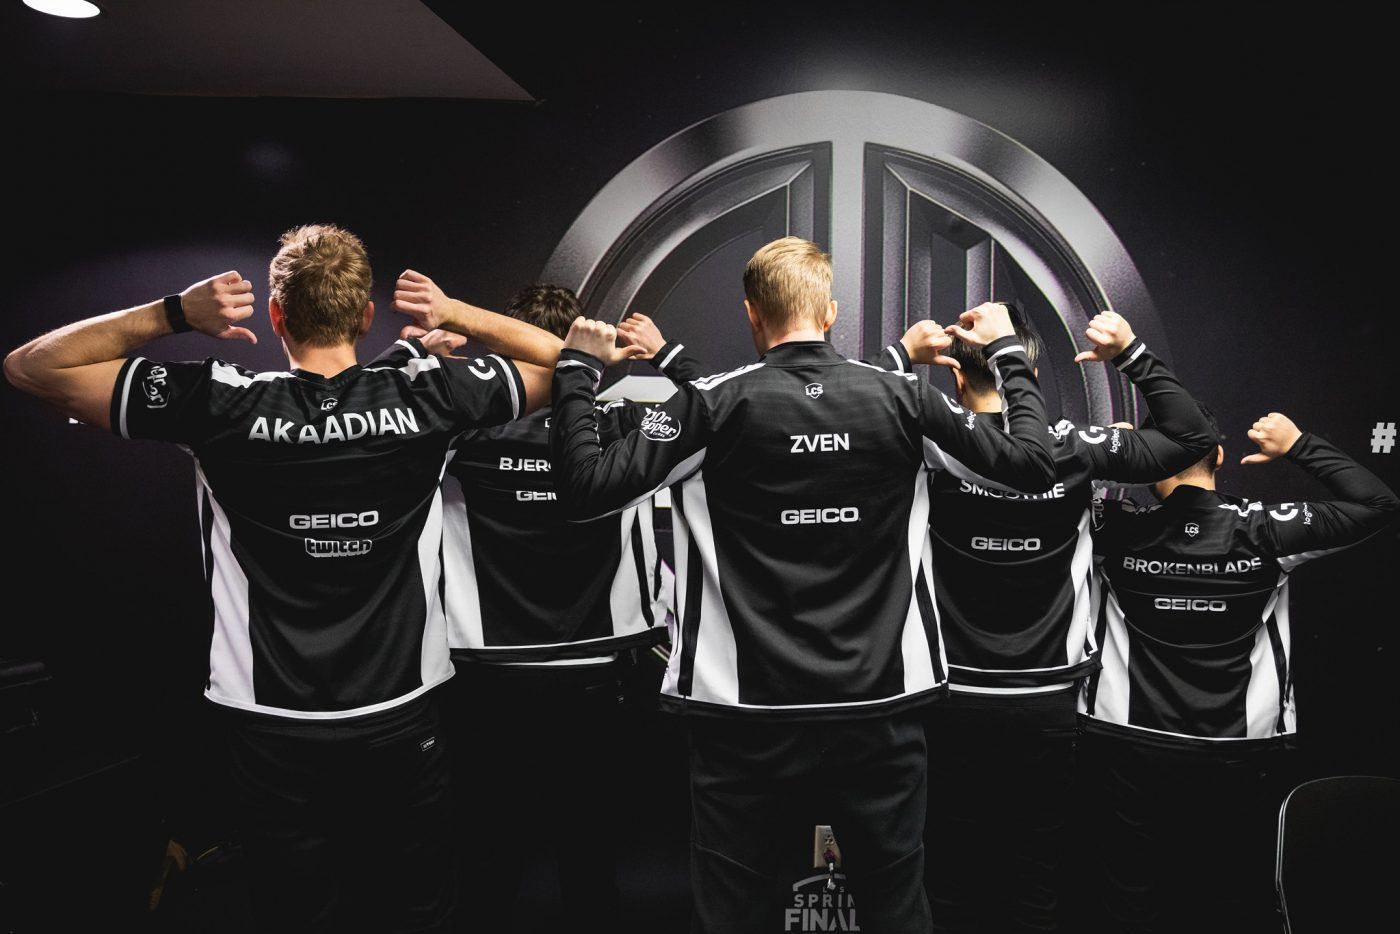 LCS team TSM pose with their new jerseys